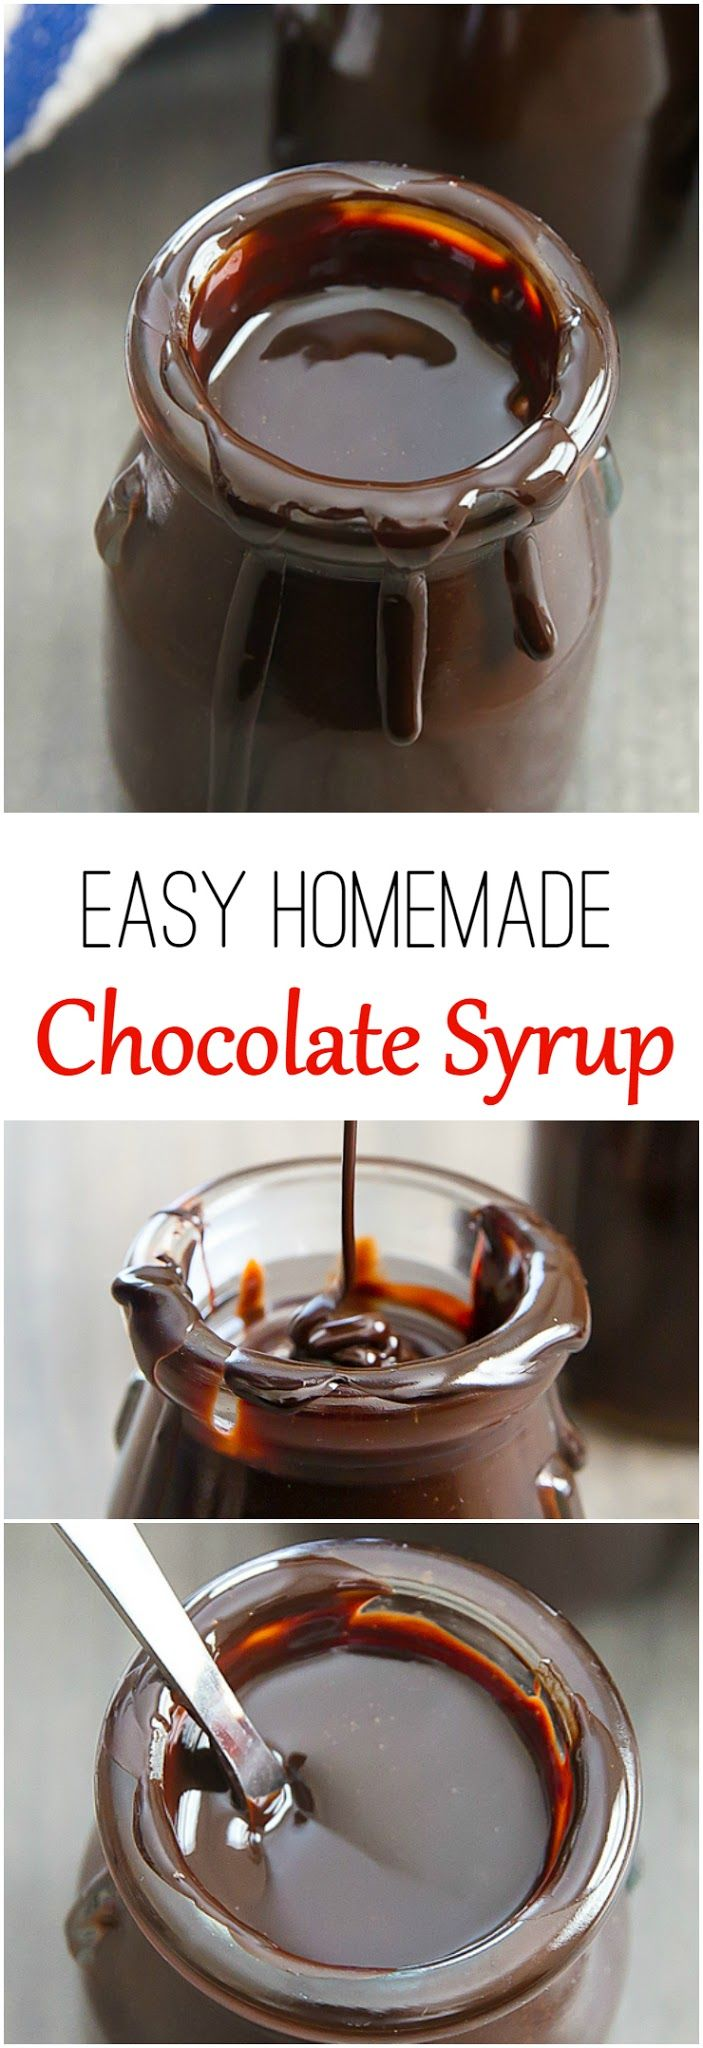 Best 25+ Homemade chocolate syrup ideas on Pinterest | Hershey ...